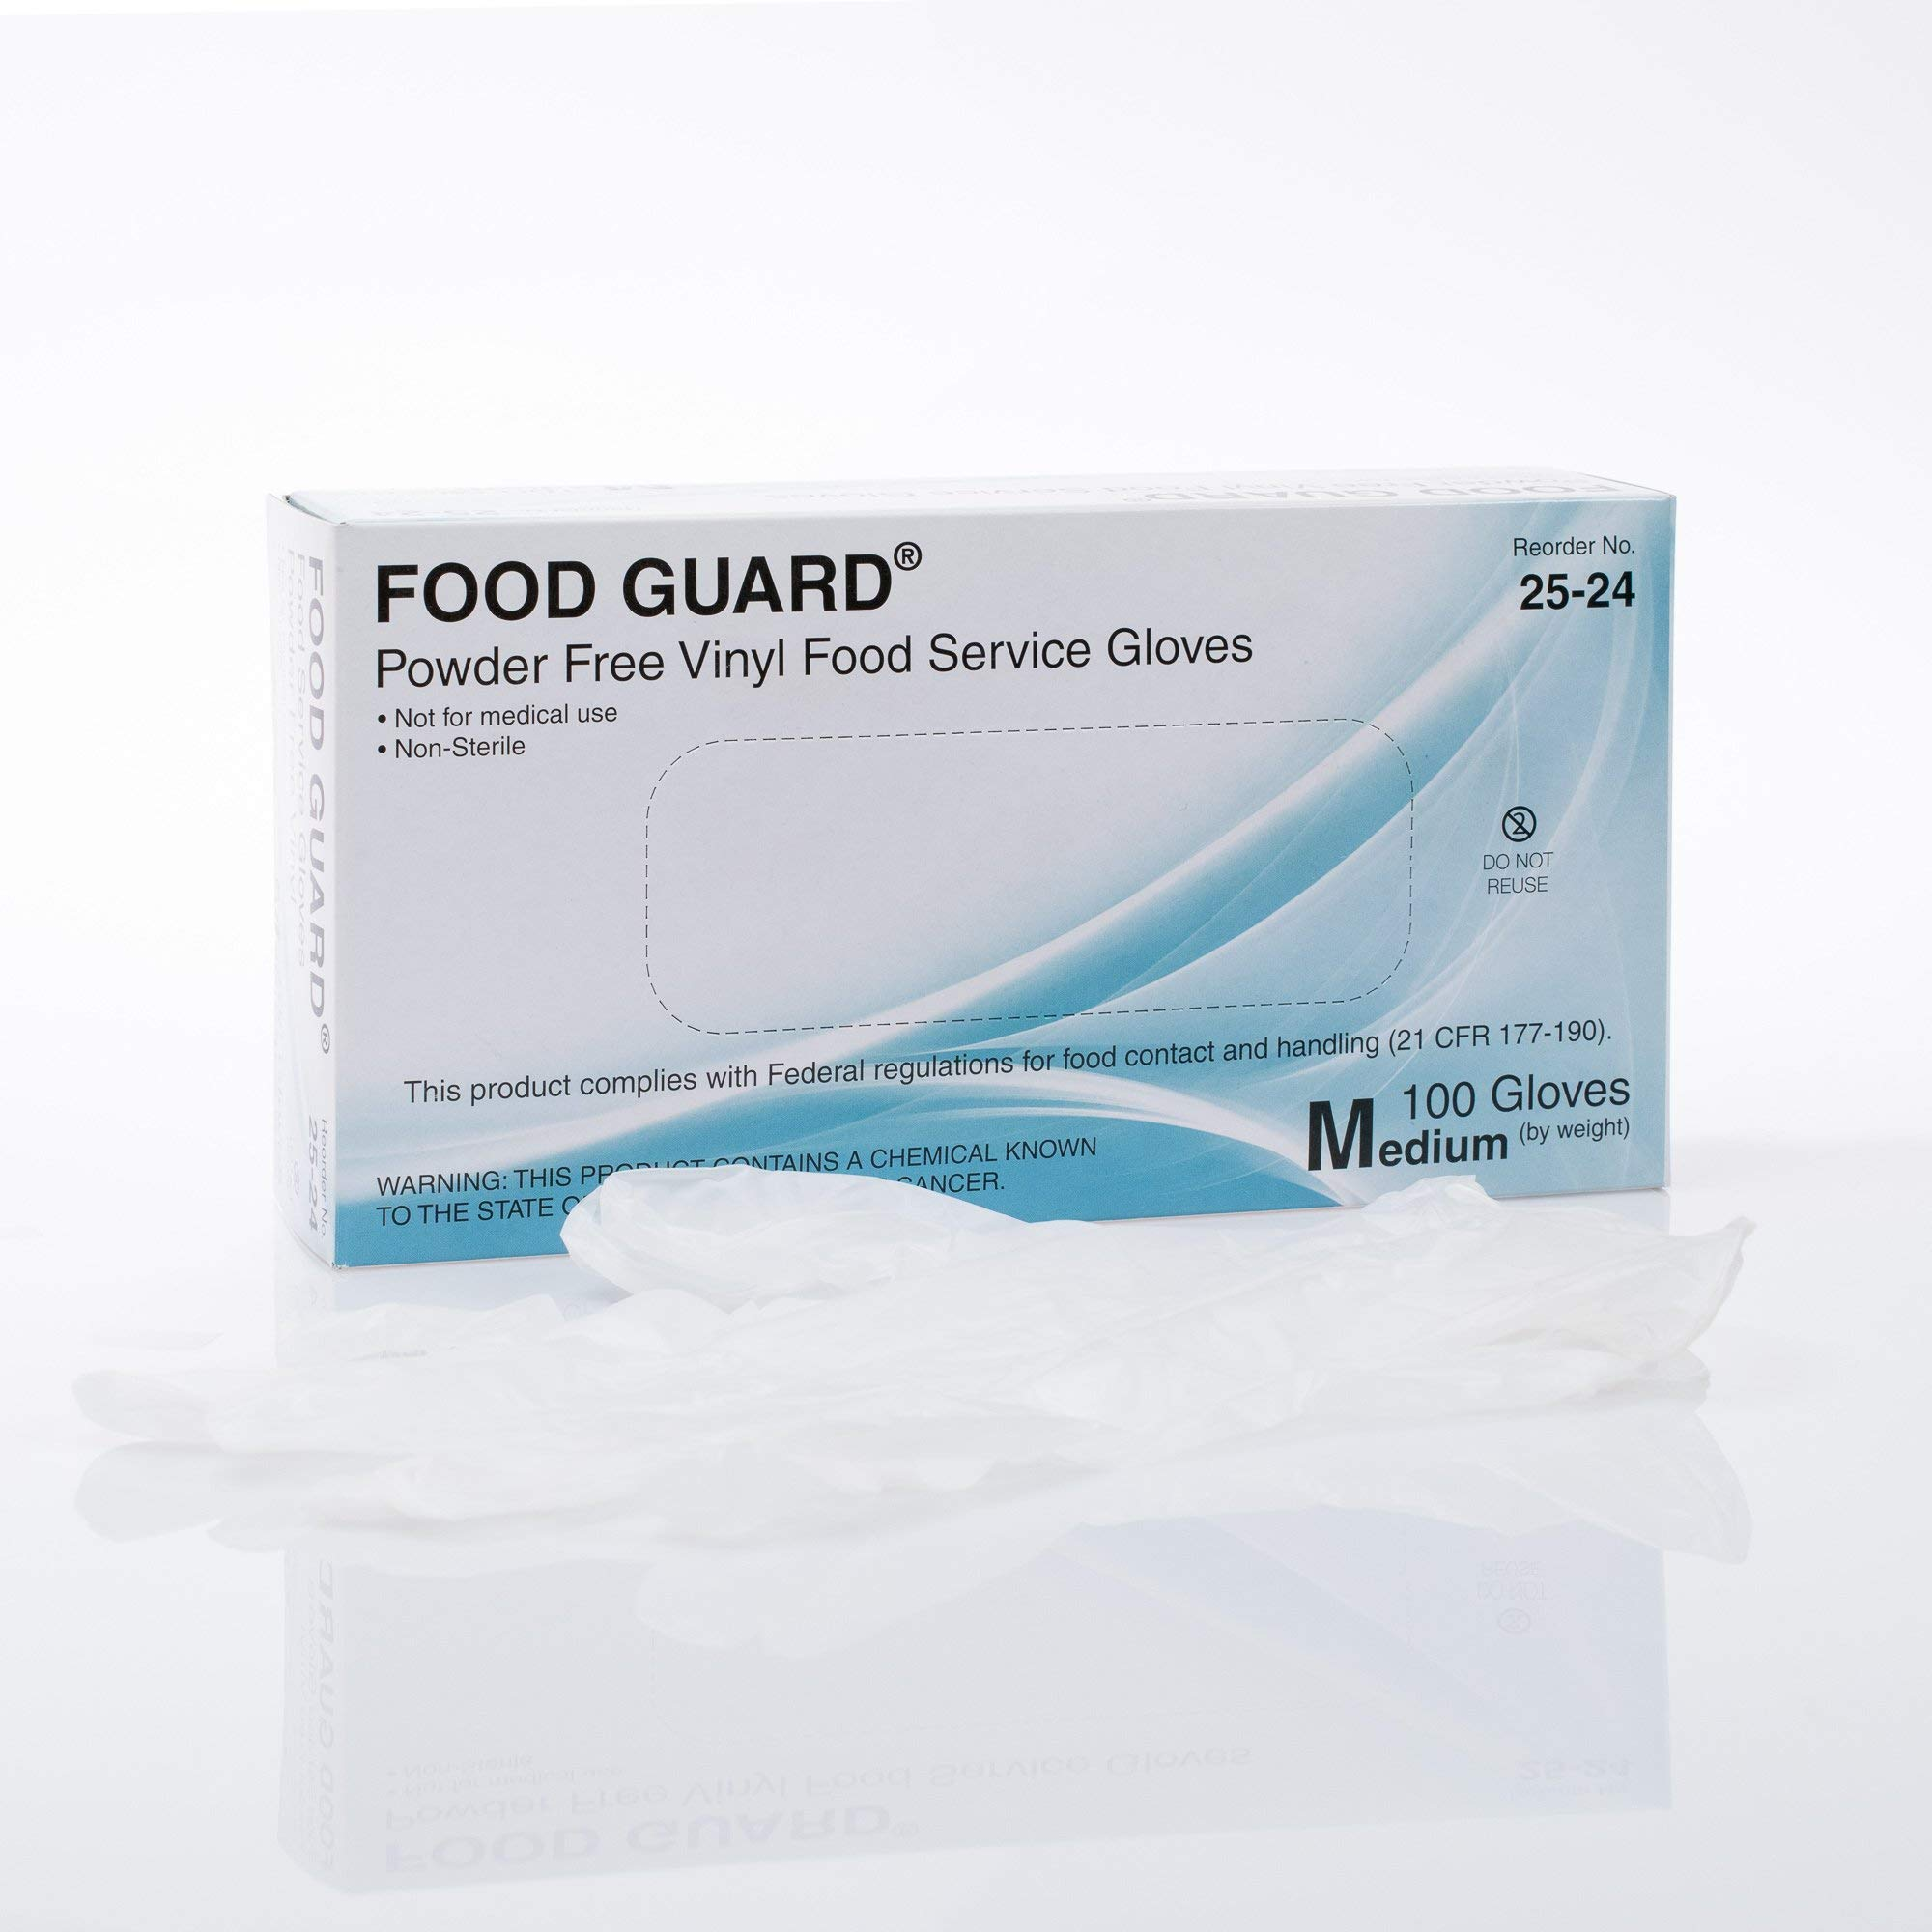 Food Guard Food Service Glove Vinyl Powder Free Medium 25-24 20 Boxes, 100 /Box